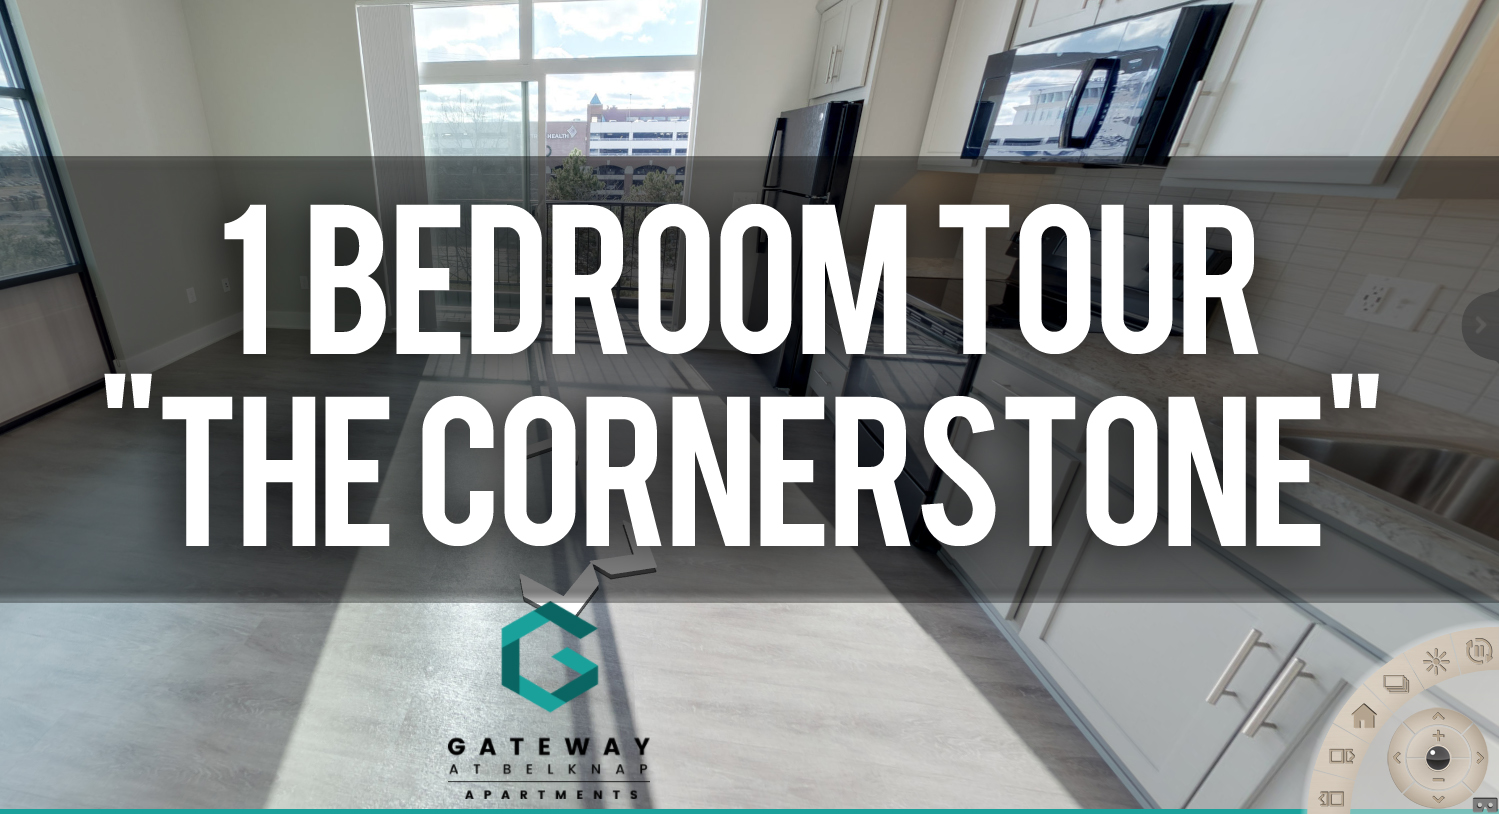 Virtual Tour of Cornerstone 1 bedroom floorplan at Gateway at Belknap